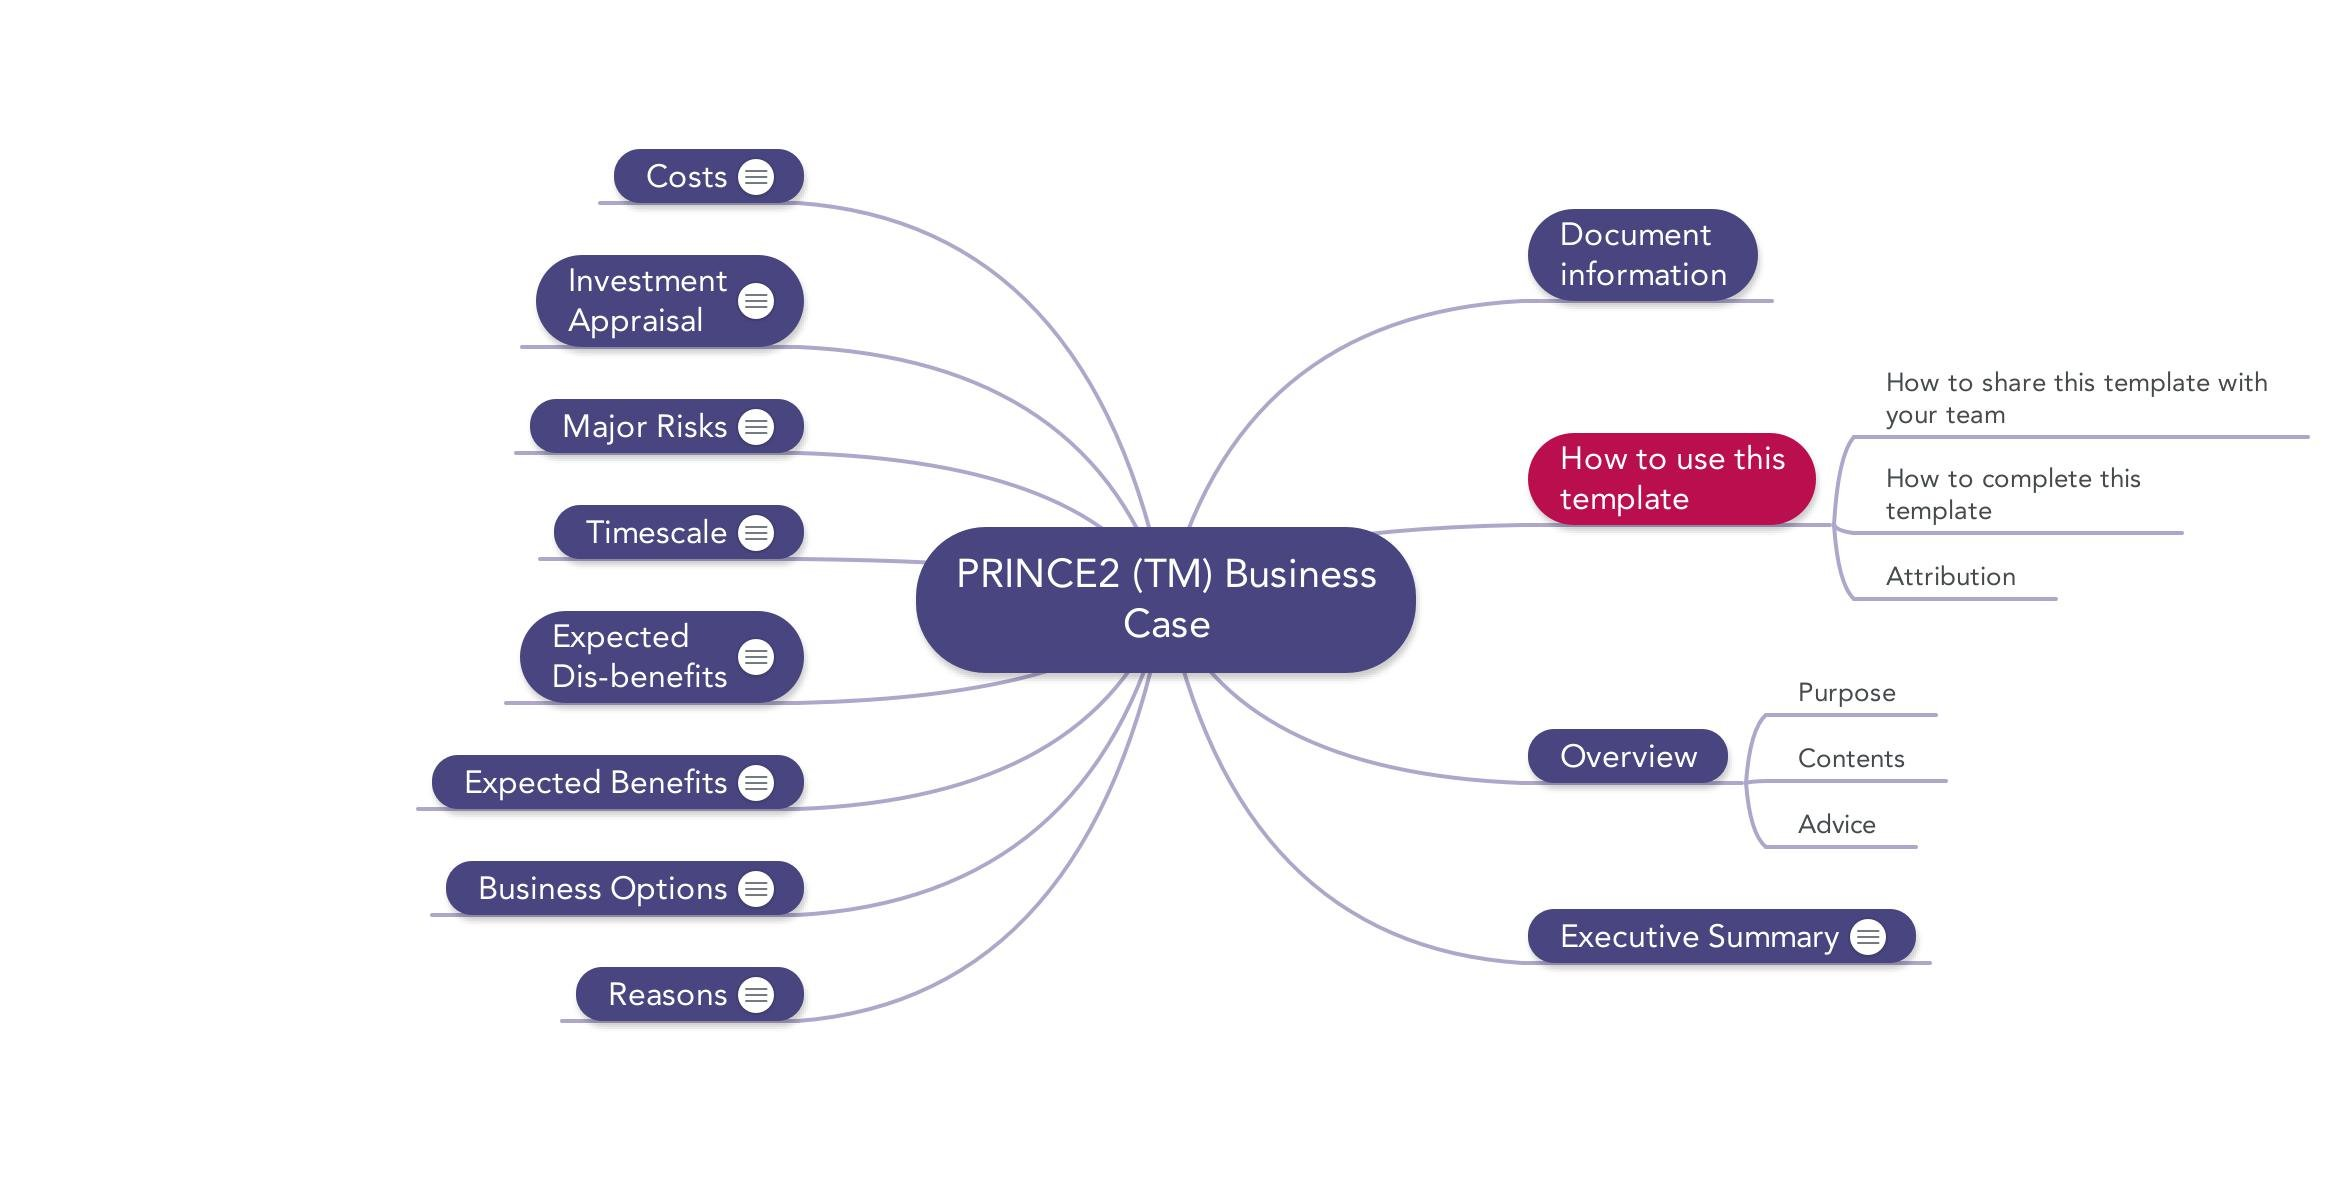 Prince2 templates mind maps word excel and pdf download the business case in word pdf or mindmap format wajeb